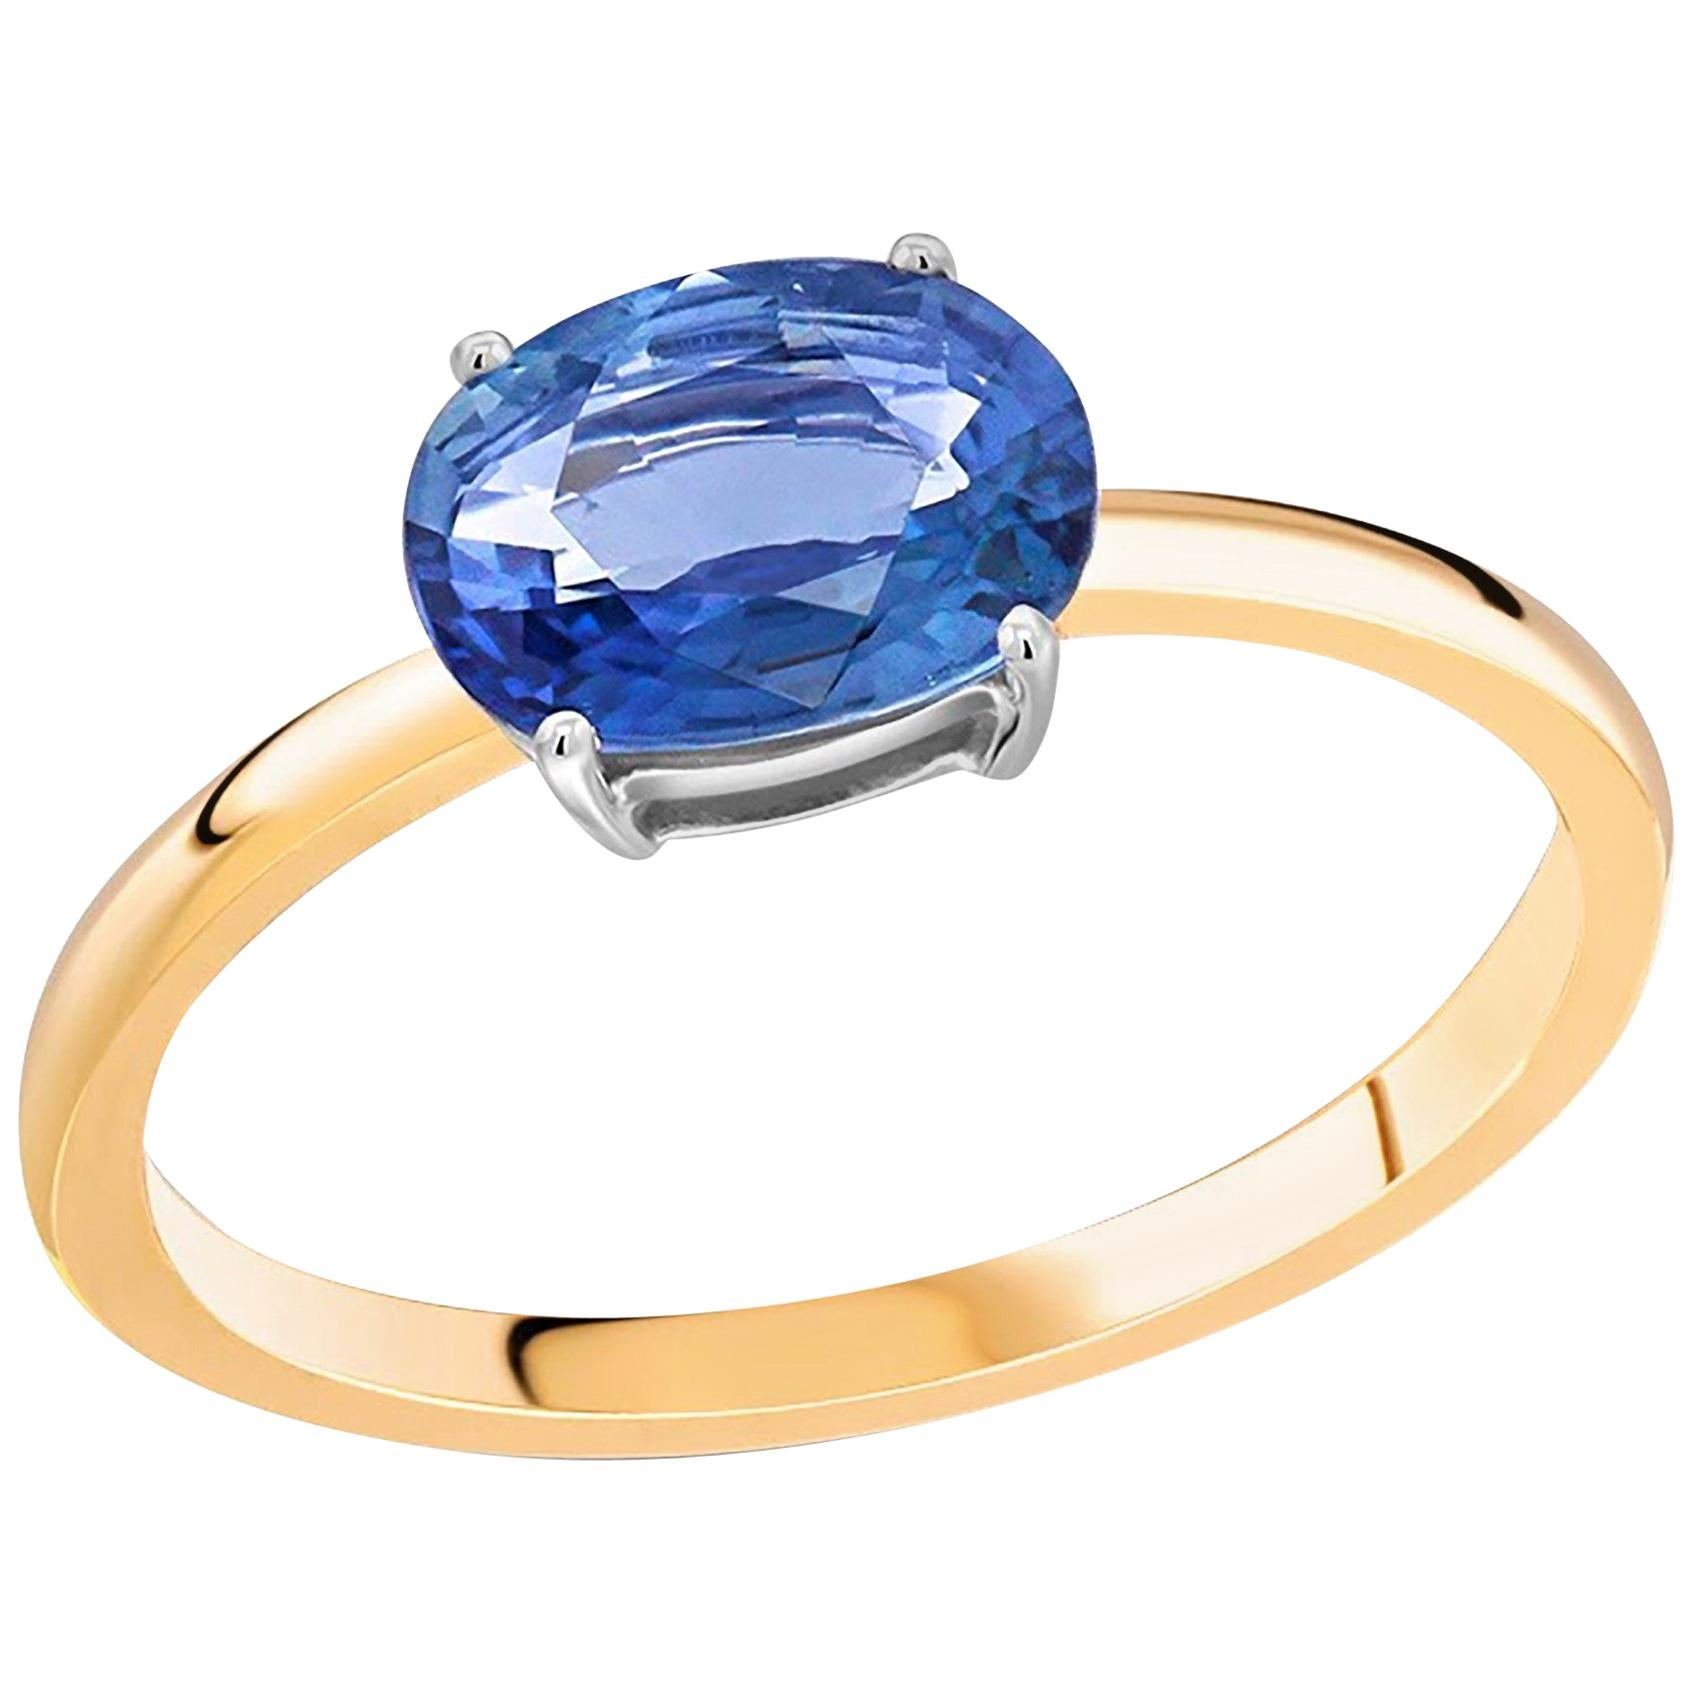 Ceylon Oval Shaped Sapphire White and Yellow Gold Solitaire Cocktail Ring